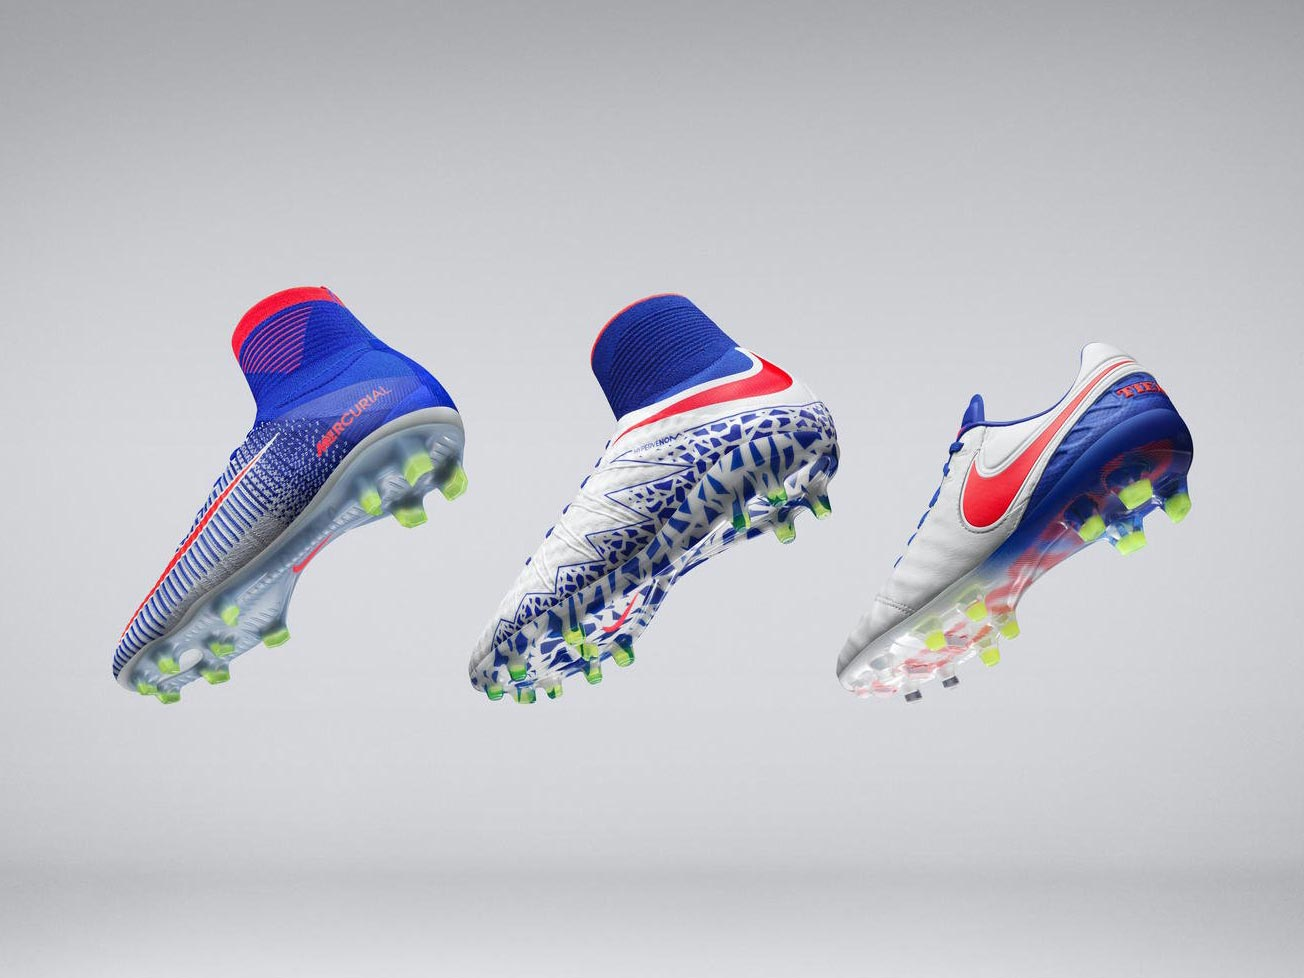 Nike have revealed a new women's exclusive football boot collection